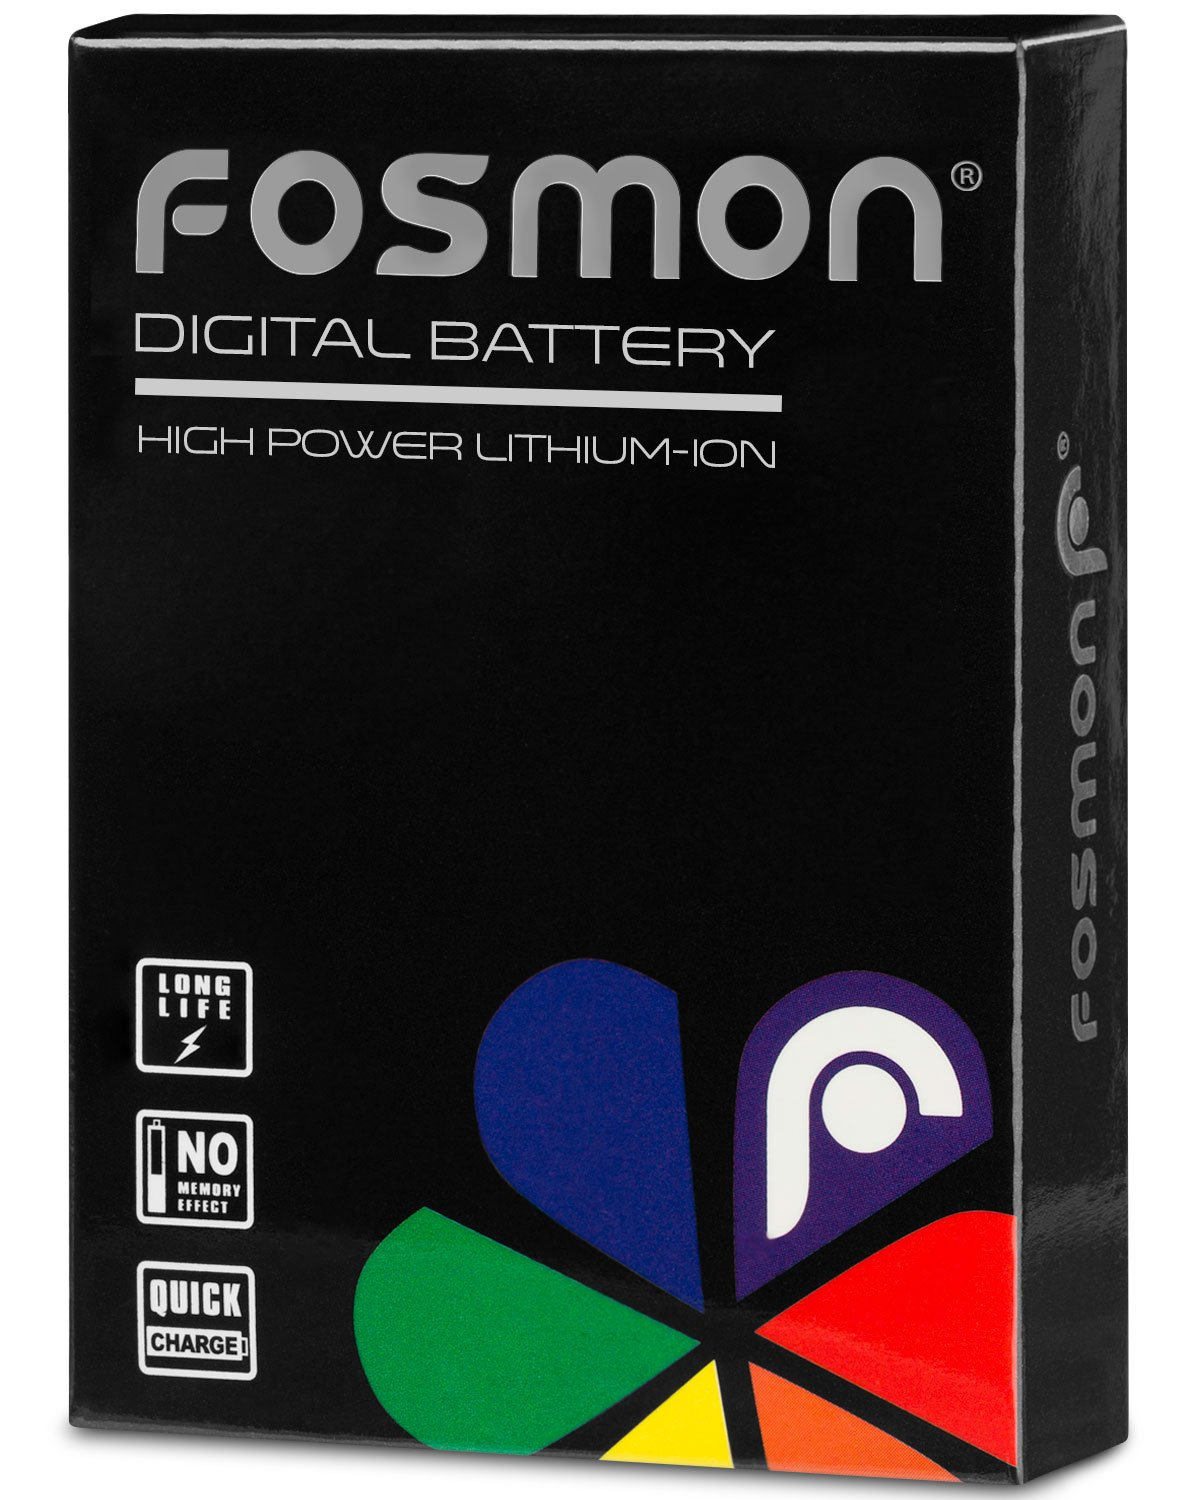 G15 1200 mAh 7.4V High Capacity NB-10L Replacement Li-ion Battery Pack Compatible with Canon PowerShot G1 X SX40 HS G16 SX50 HS Fosmon 2-Pack